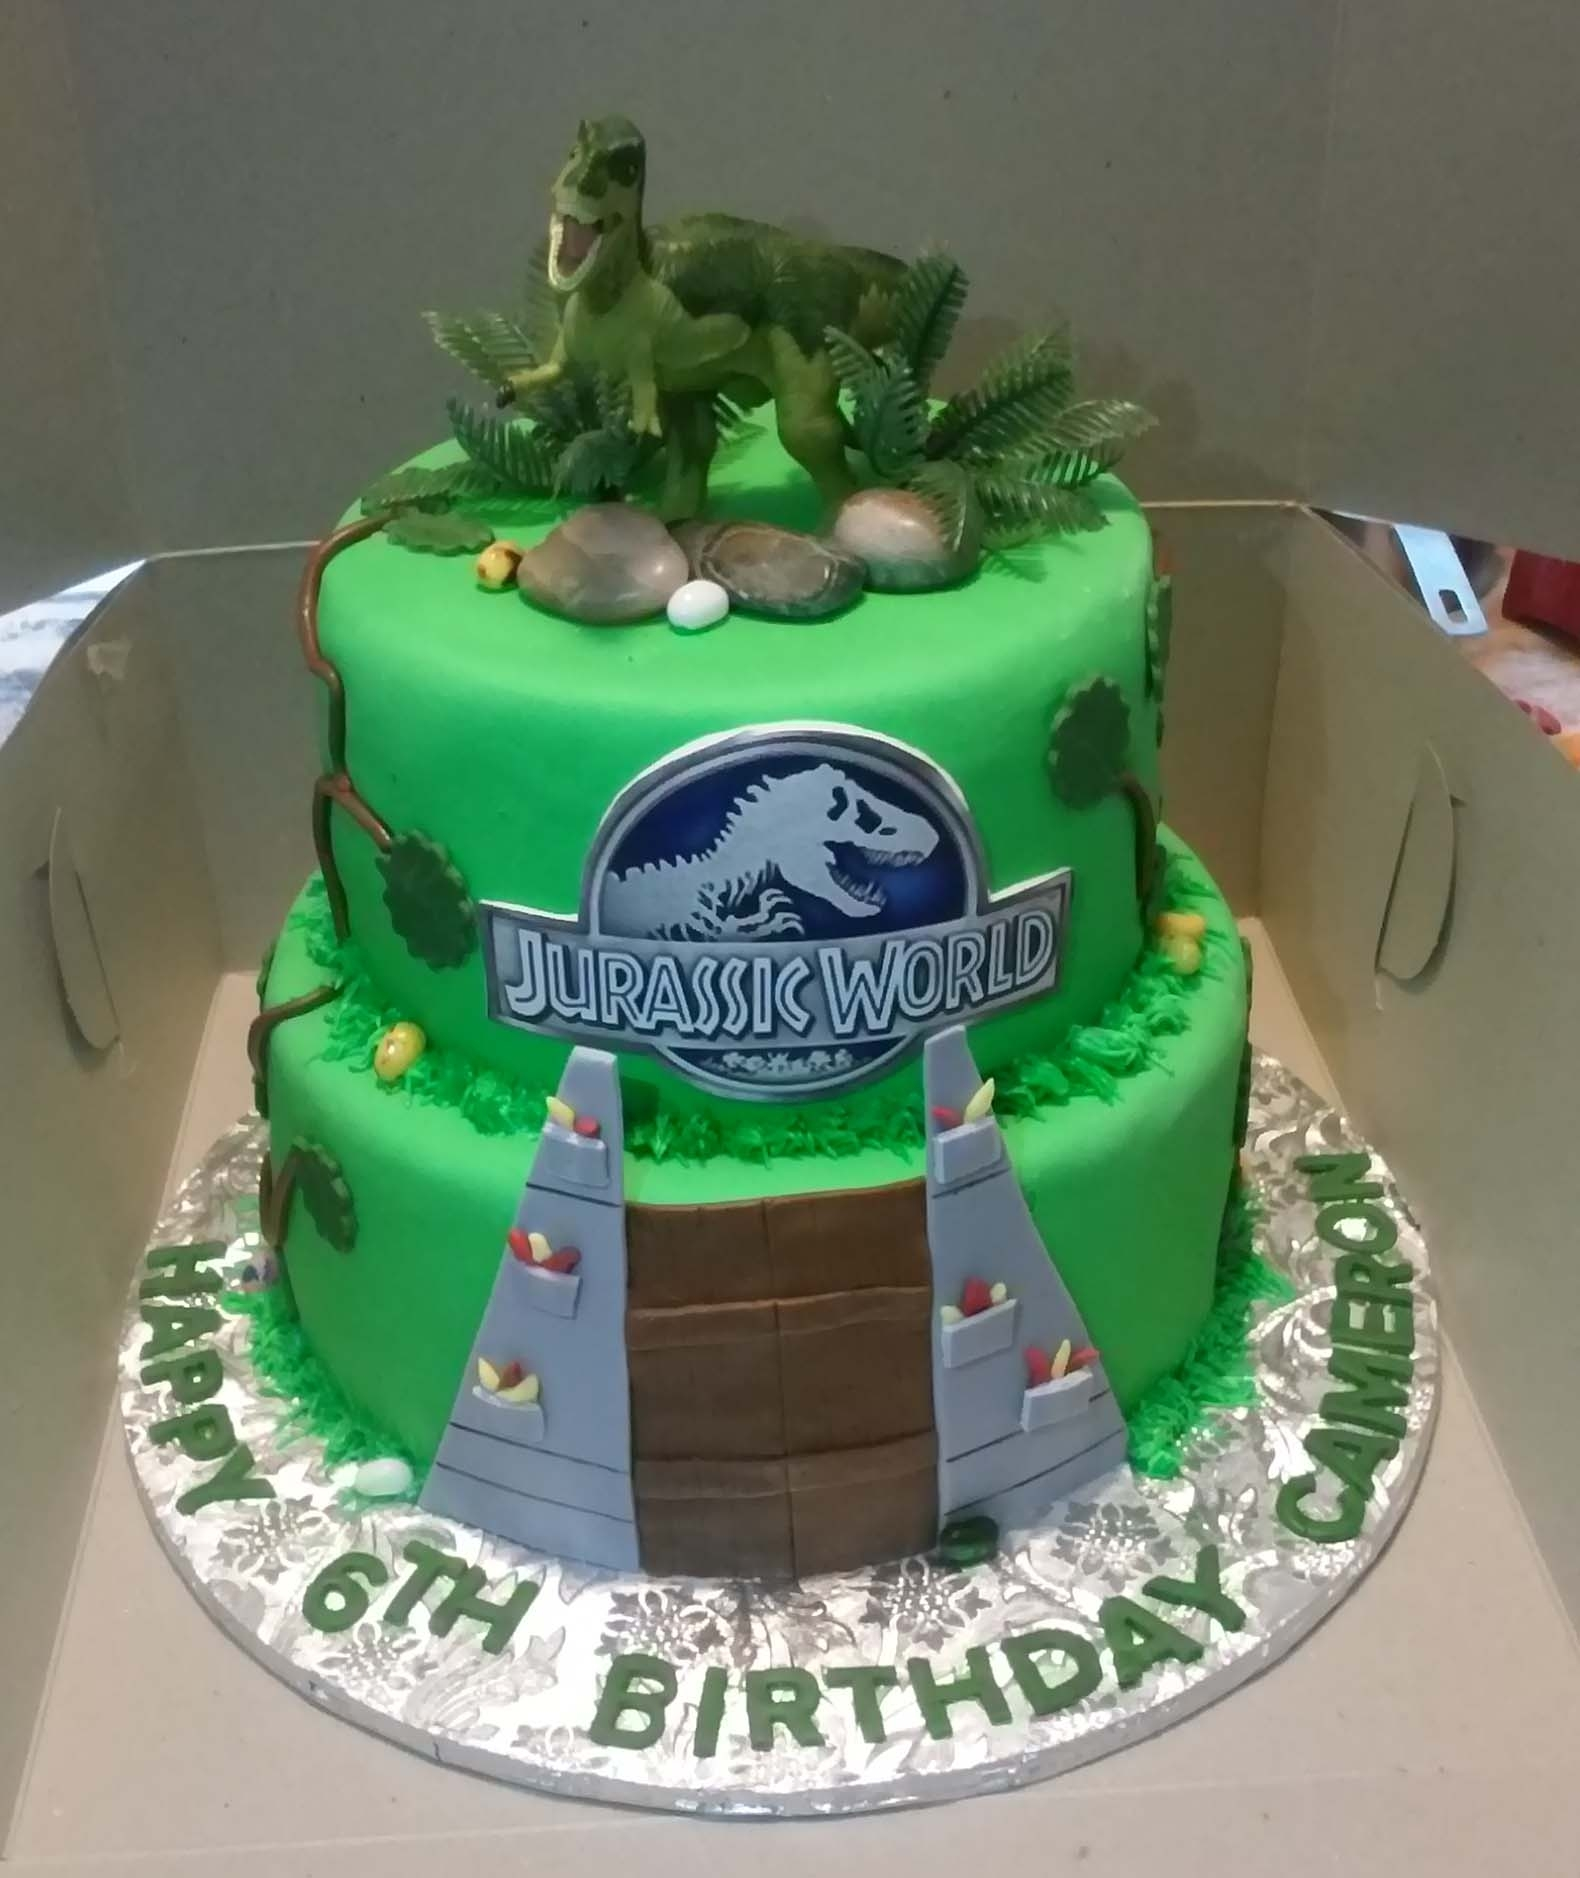 2 Tier Jurassic World Themed Birthday Cake On Central